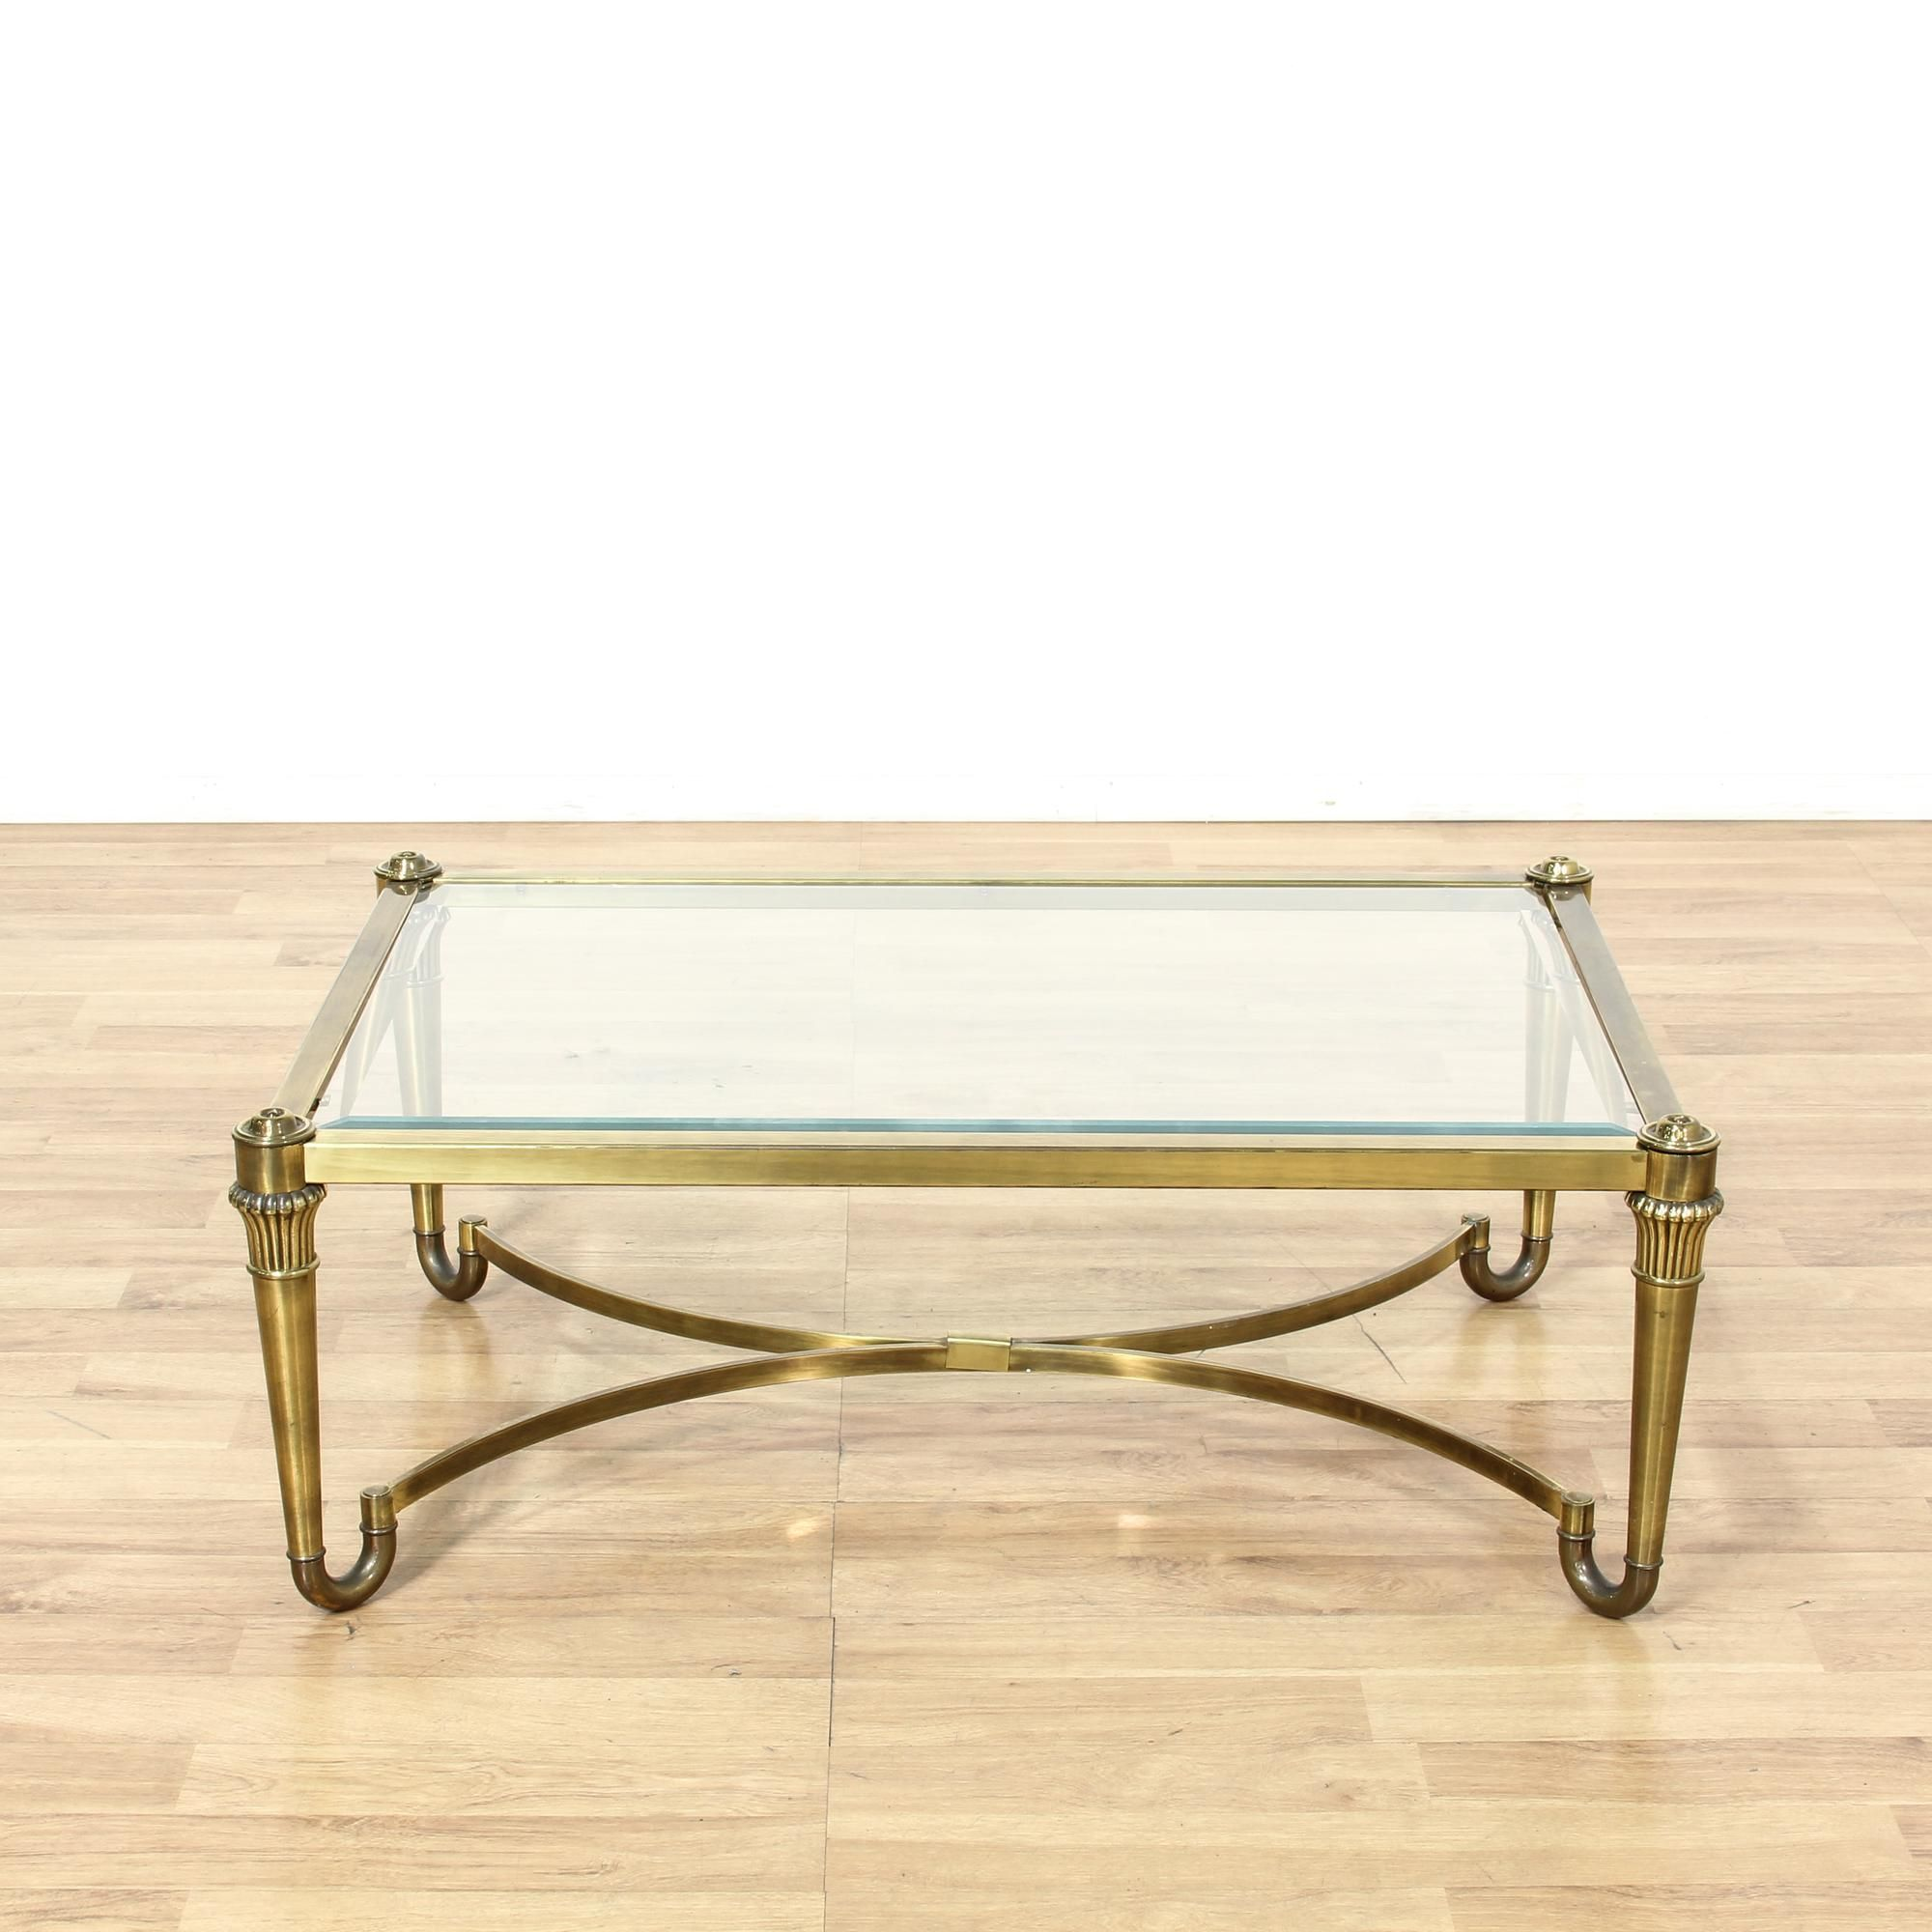 This Hollywood Regency Coffee Table Is Featured In A Durable Metal With A Shiny Brass Finish This Coffee T Glass Top Coffee Table Coffee Table Glass Top Table [ 2000 x 2000 Pixel ]